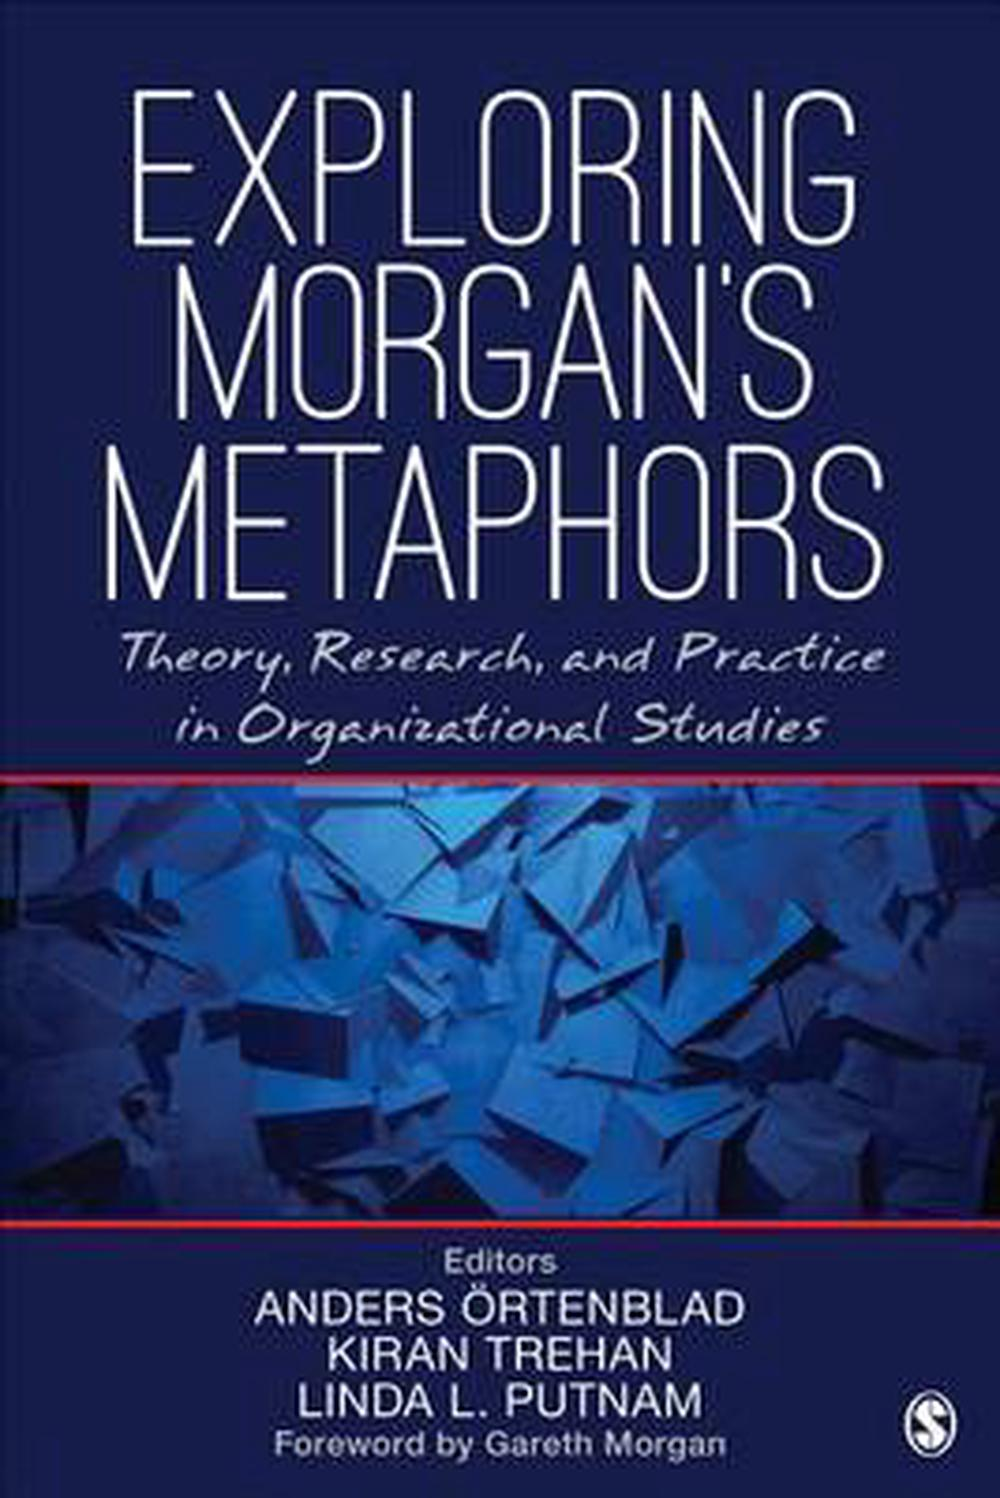 morgan s metaphor Here's a tip: a dead metaphor is a cliche that has become so commonplace that the imagery has lost its power examples of dead metaphors include.